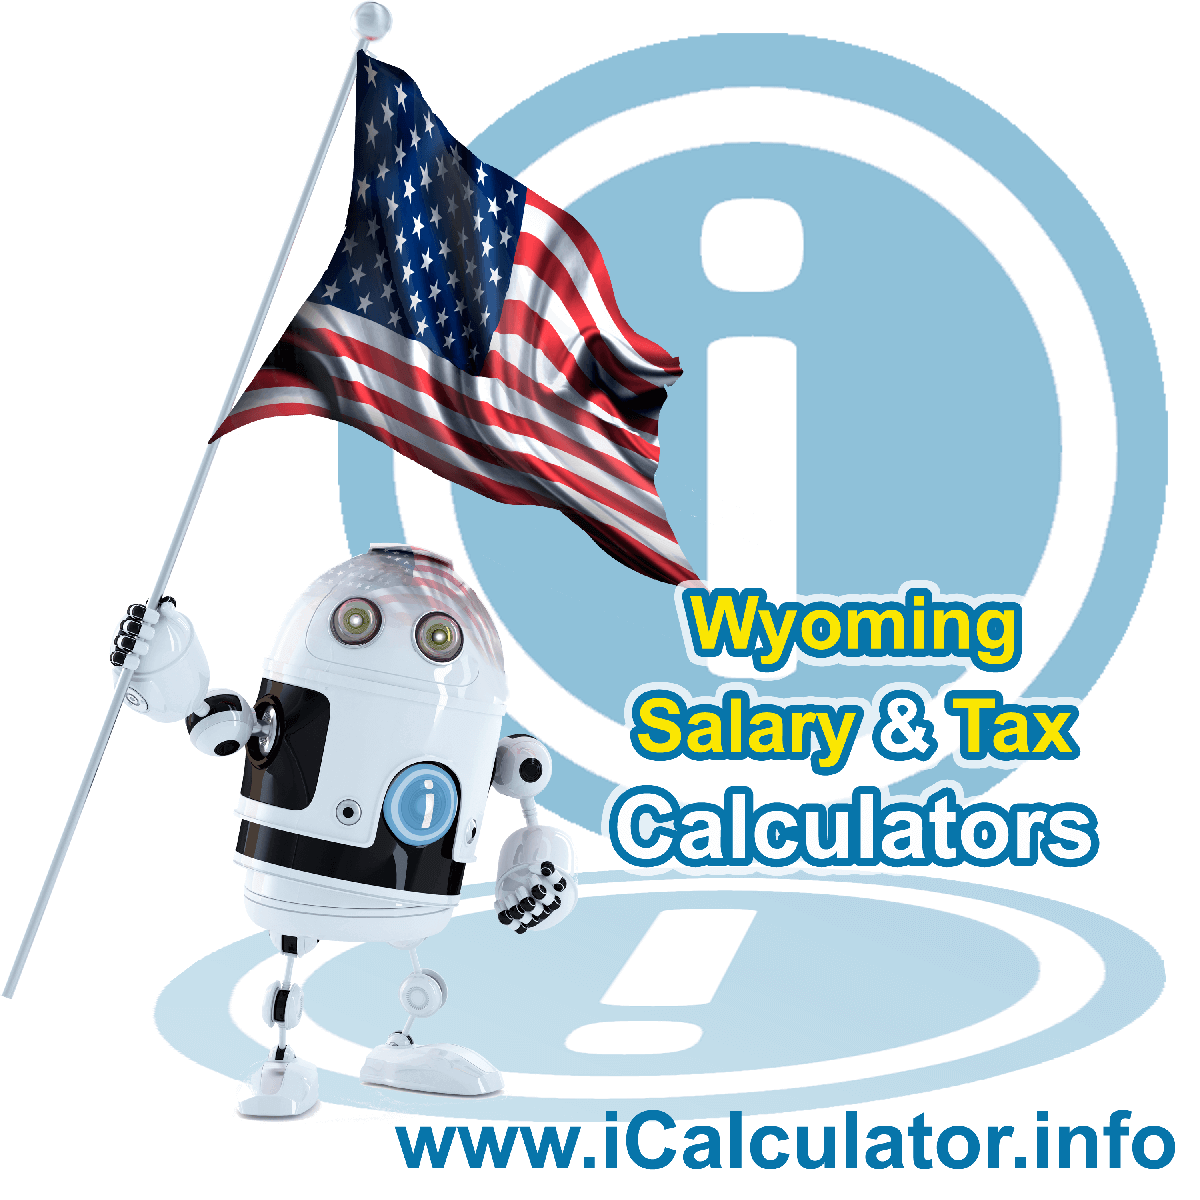 Wyoming Salary Calculator 2020 | iCalculator | The Wyoming Salary Calculator allows you to quickly calculate your salary after tax including Wyoming State Tax, Federal State Tax, Medicare Deductions, Social Security, Capital Gains and other income tax and salary deductions complete with supporting Wyoming state tax tables